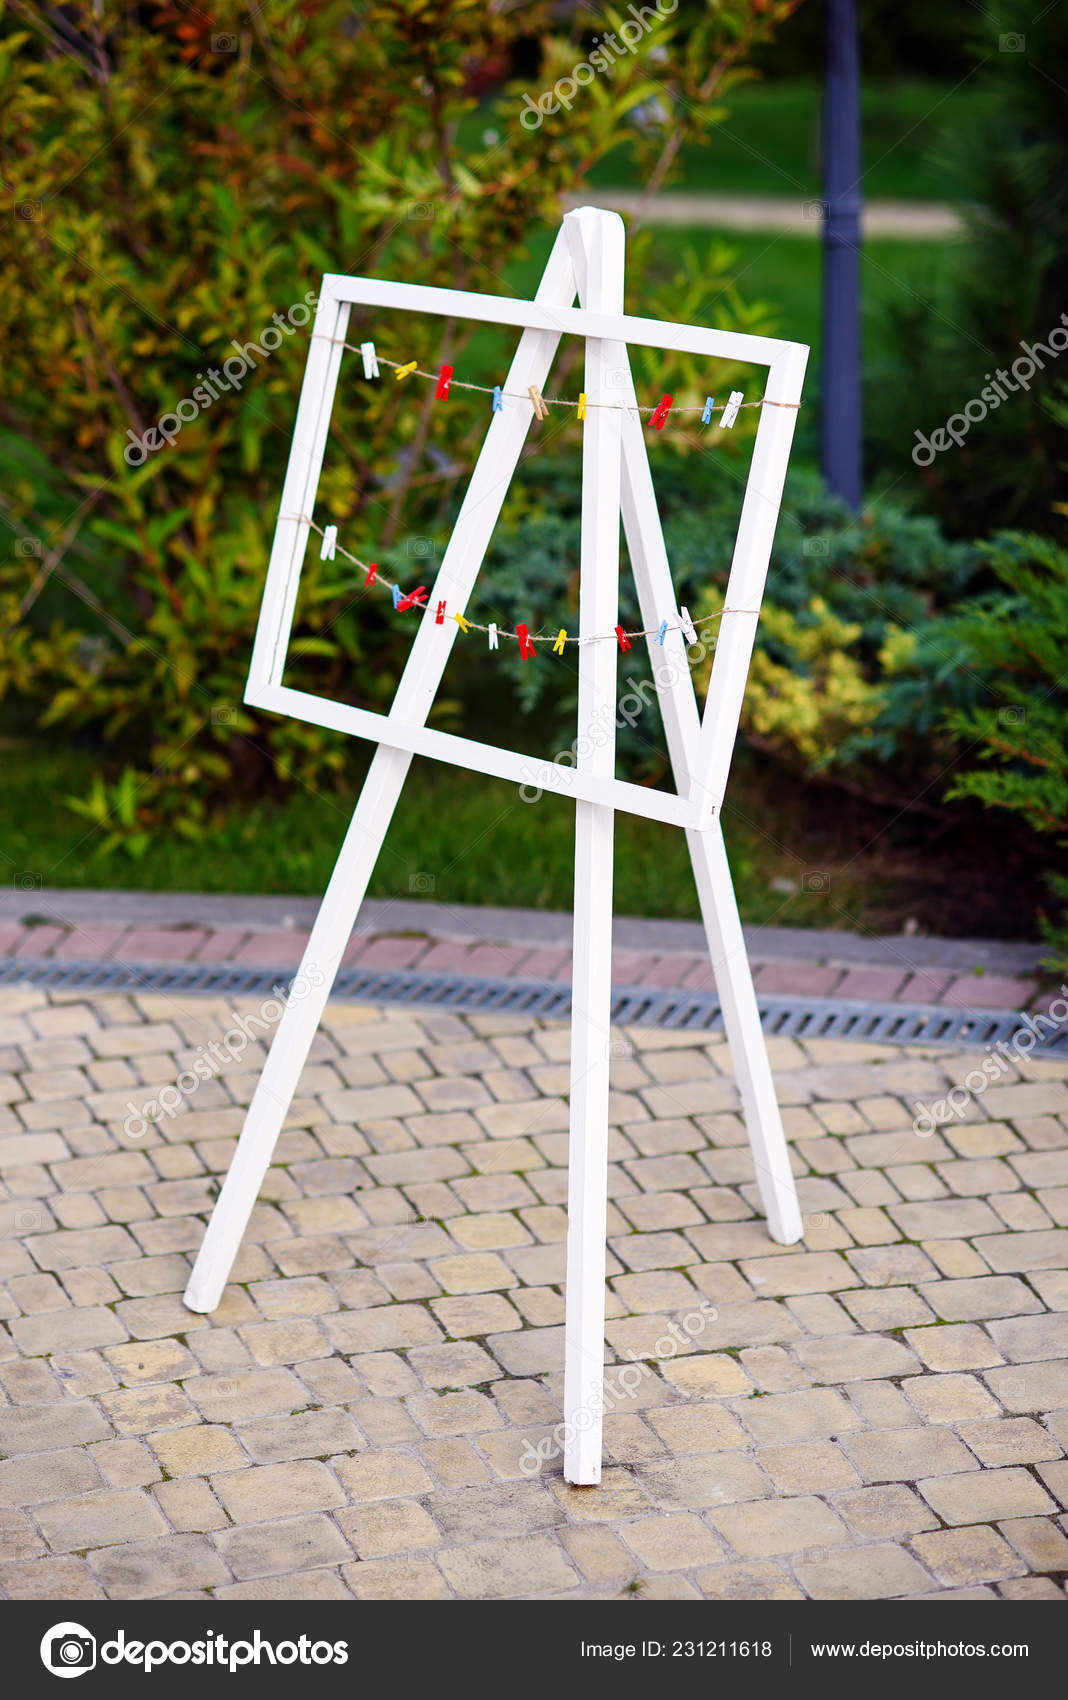 Decorative Easels For Weddings.White Wooden Decorative Easel Ropes Cuffs Wedding Party